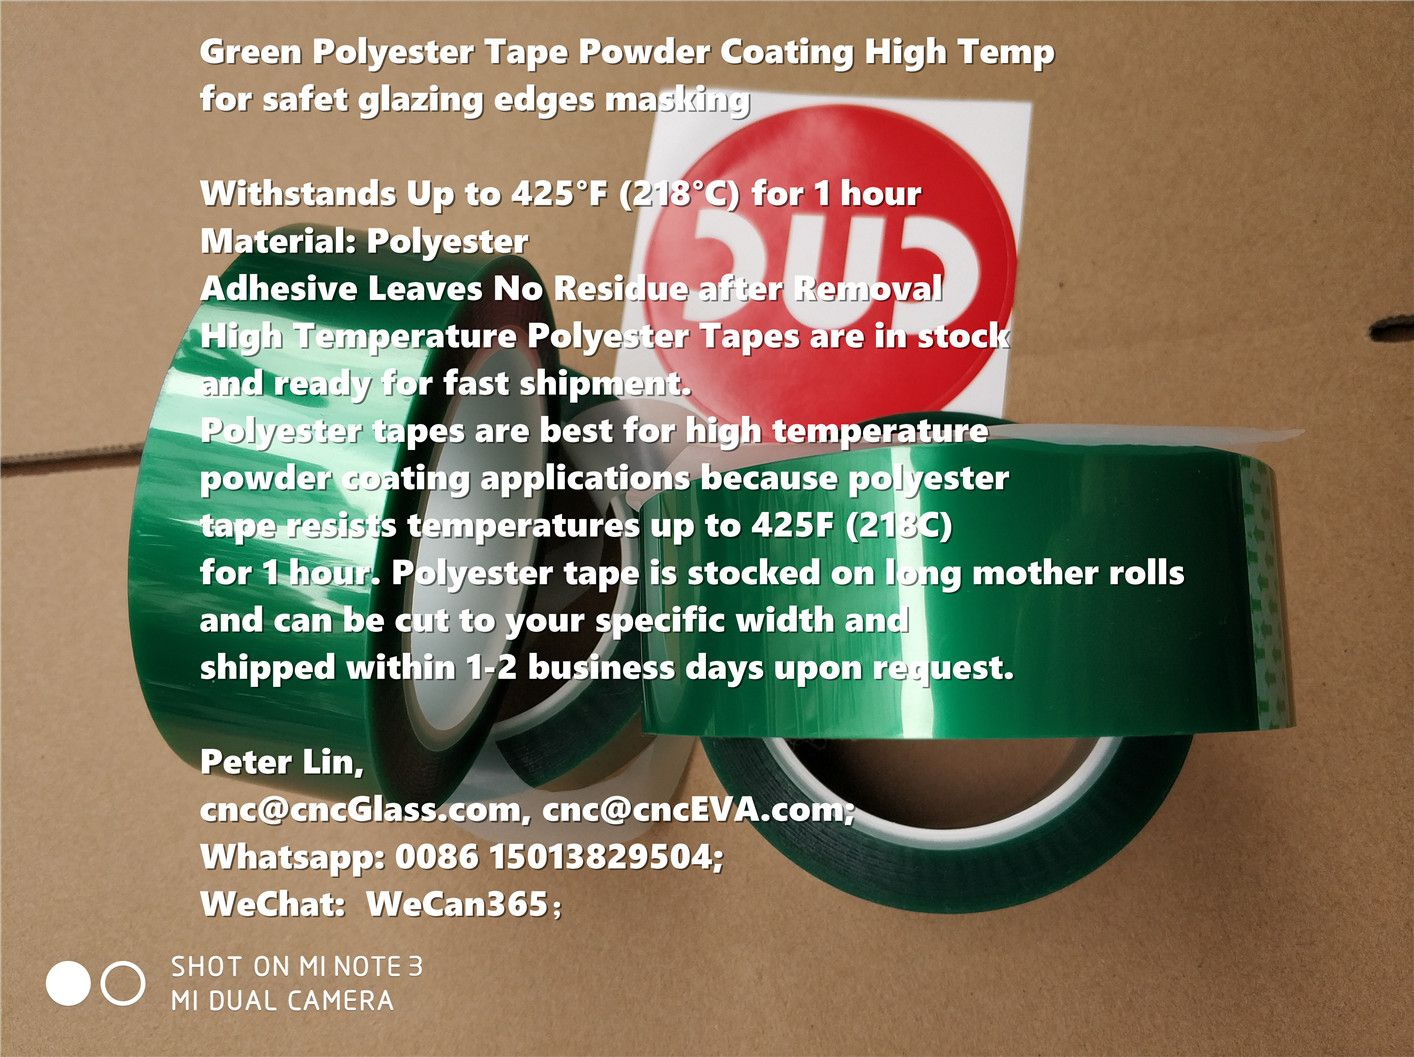 Green Polyester Tape Powder Coating High Temp For Safet Glazing Edges Masking Withstands Up To 425 F 218 C For 1 Hour Material P Tape How To Remove Adhesive